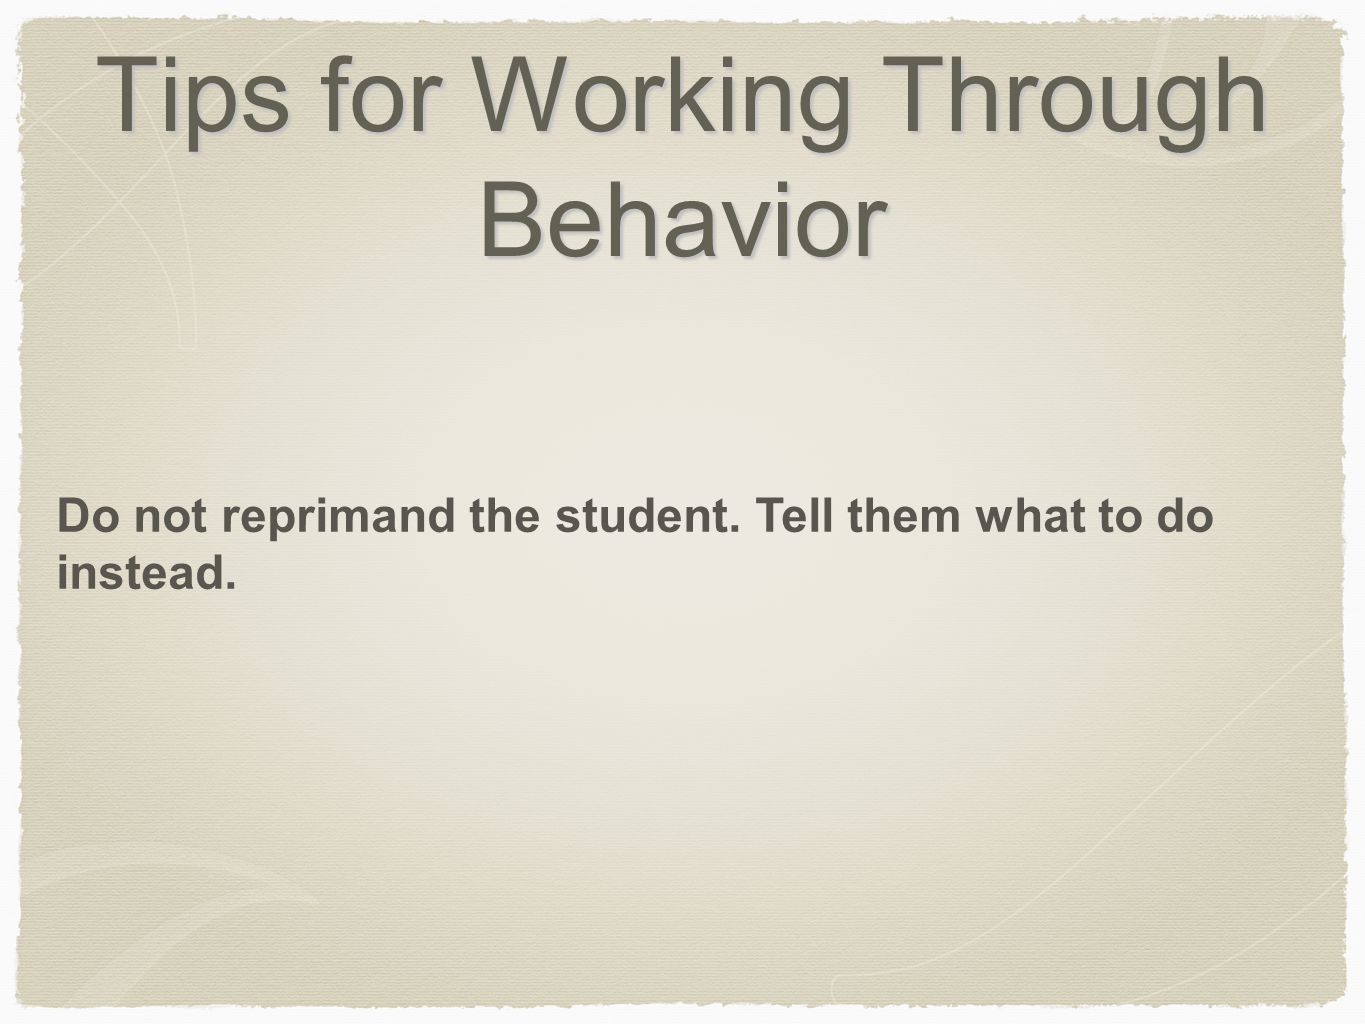 Tips for Working Through Behavior Do not reprimand the student. Tell them what to do instead.